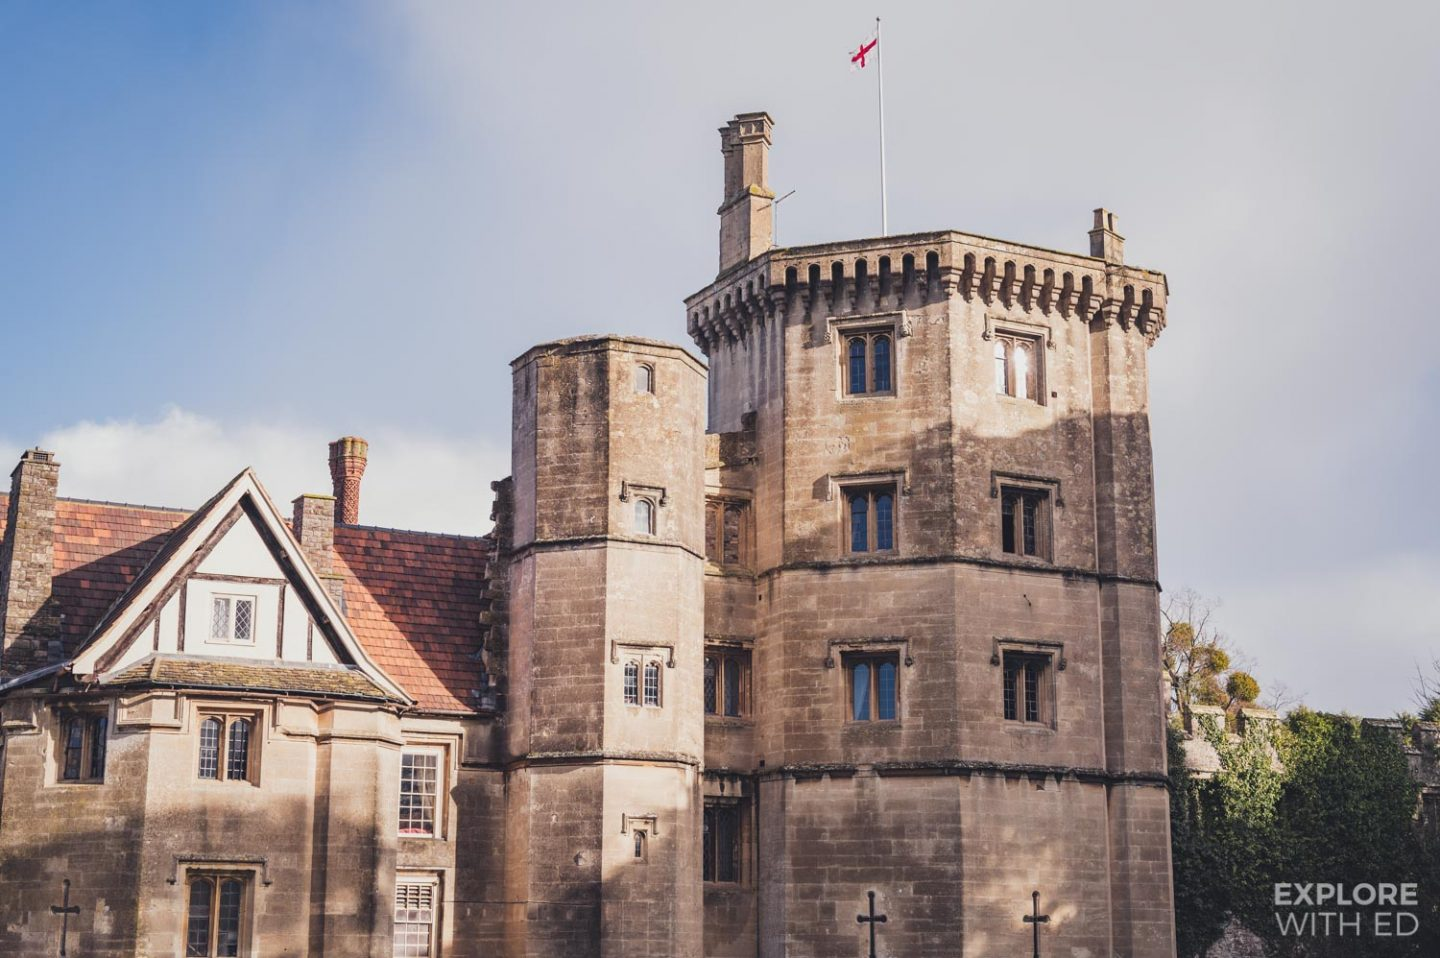 Thornbury Castle in the West Country, England where King Henry VIII and Anne Boleyn stayed